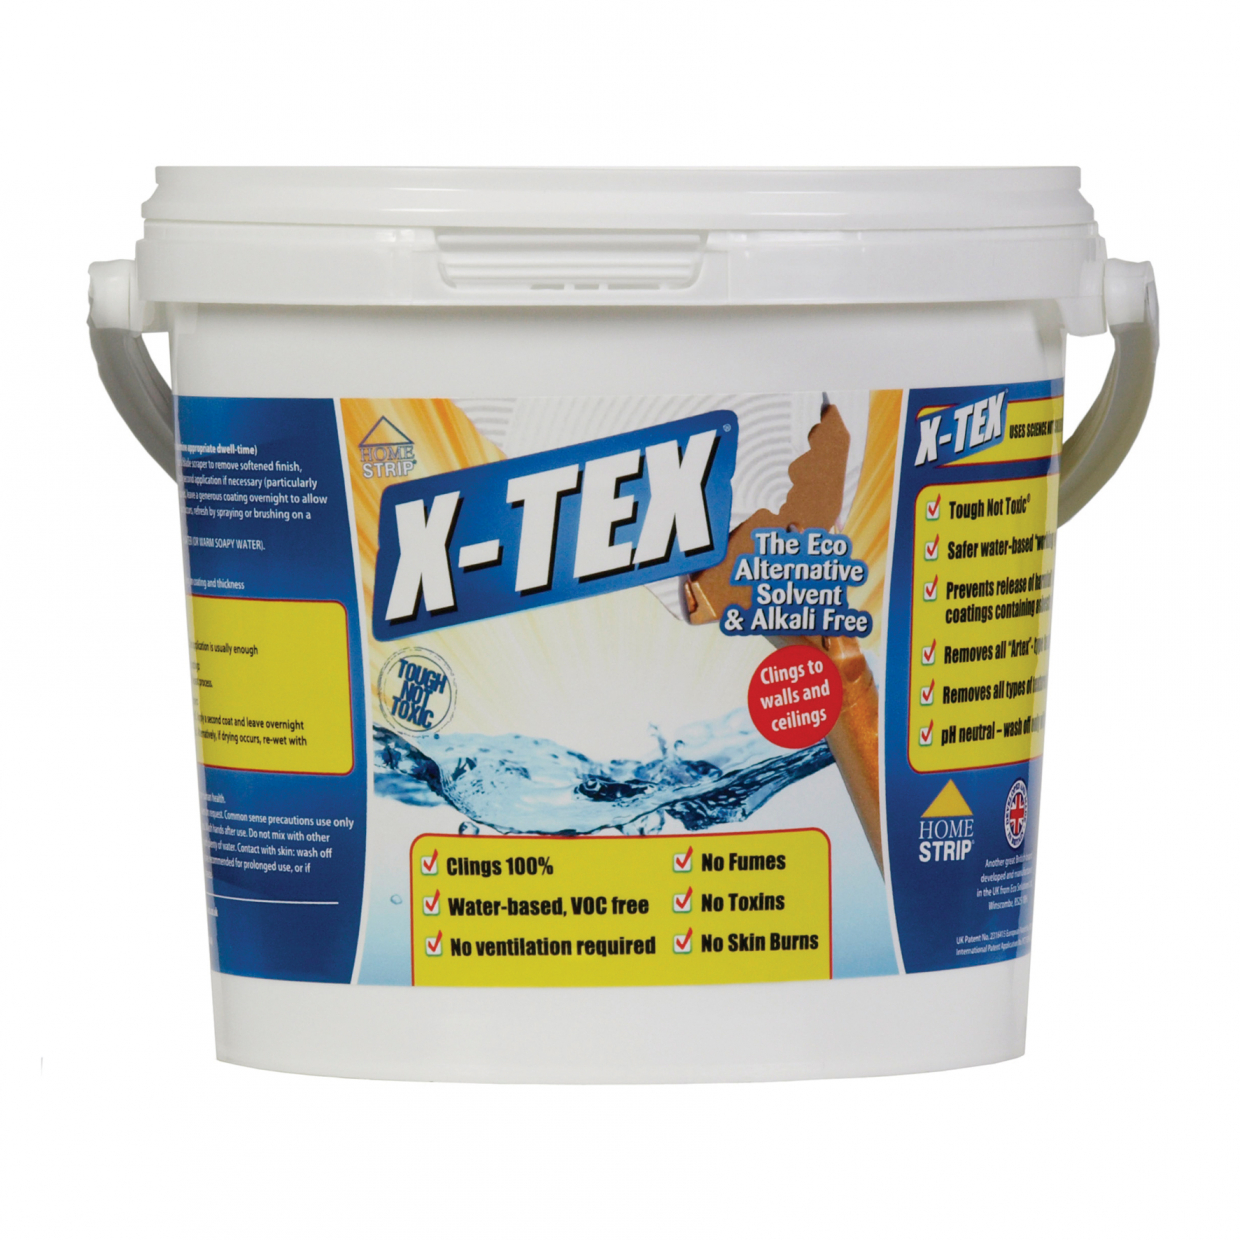 HOME STRIP X-TEX TEXTURED COATINGS REMOVER 2.5 LITRE